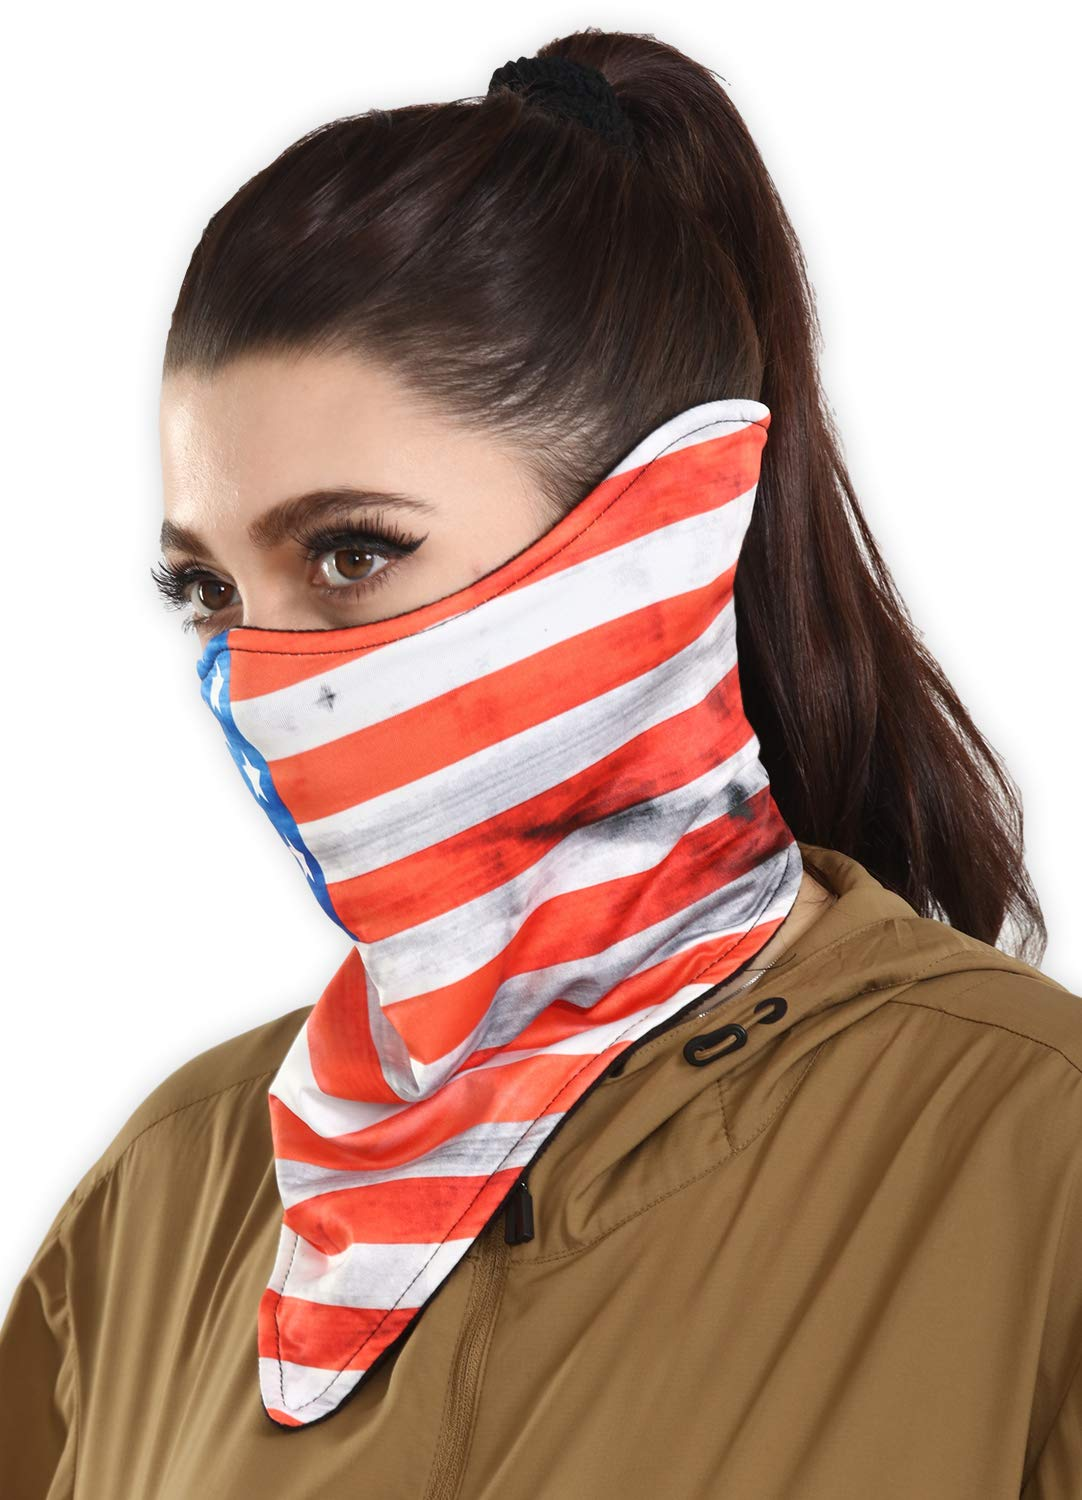 USA Tactical Winter Face Mask Tough Headwear Neoprene Ski Mask Snowboarding /& Motorcycling Perfect for Skiing